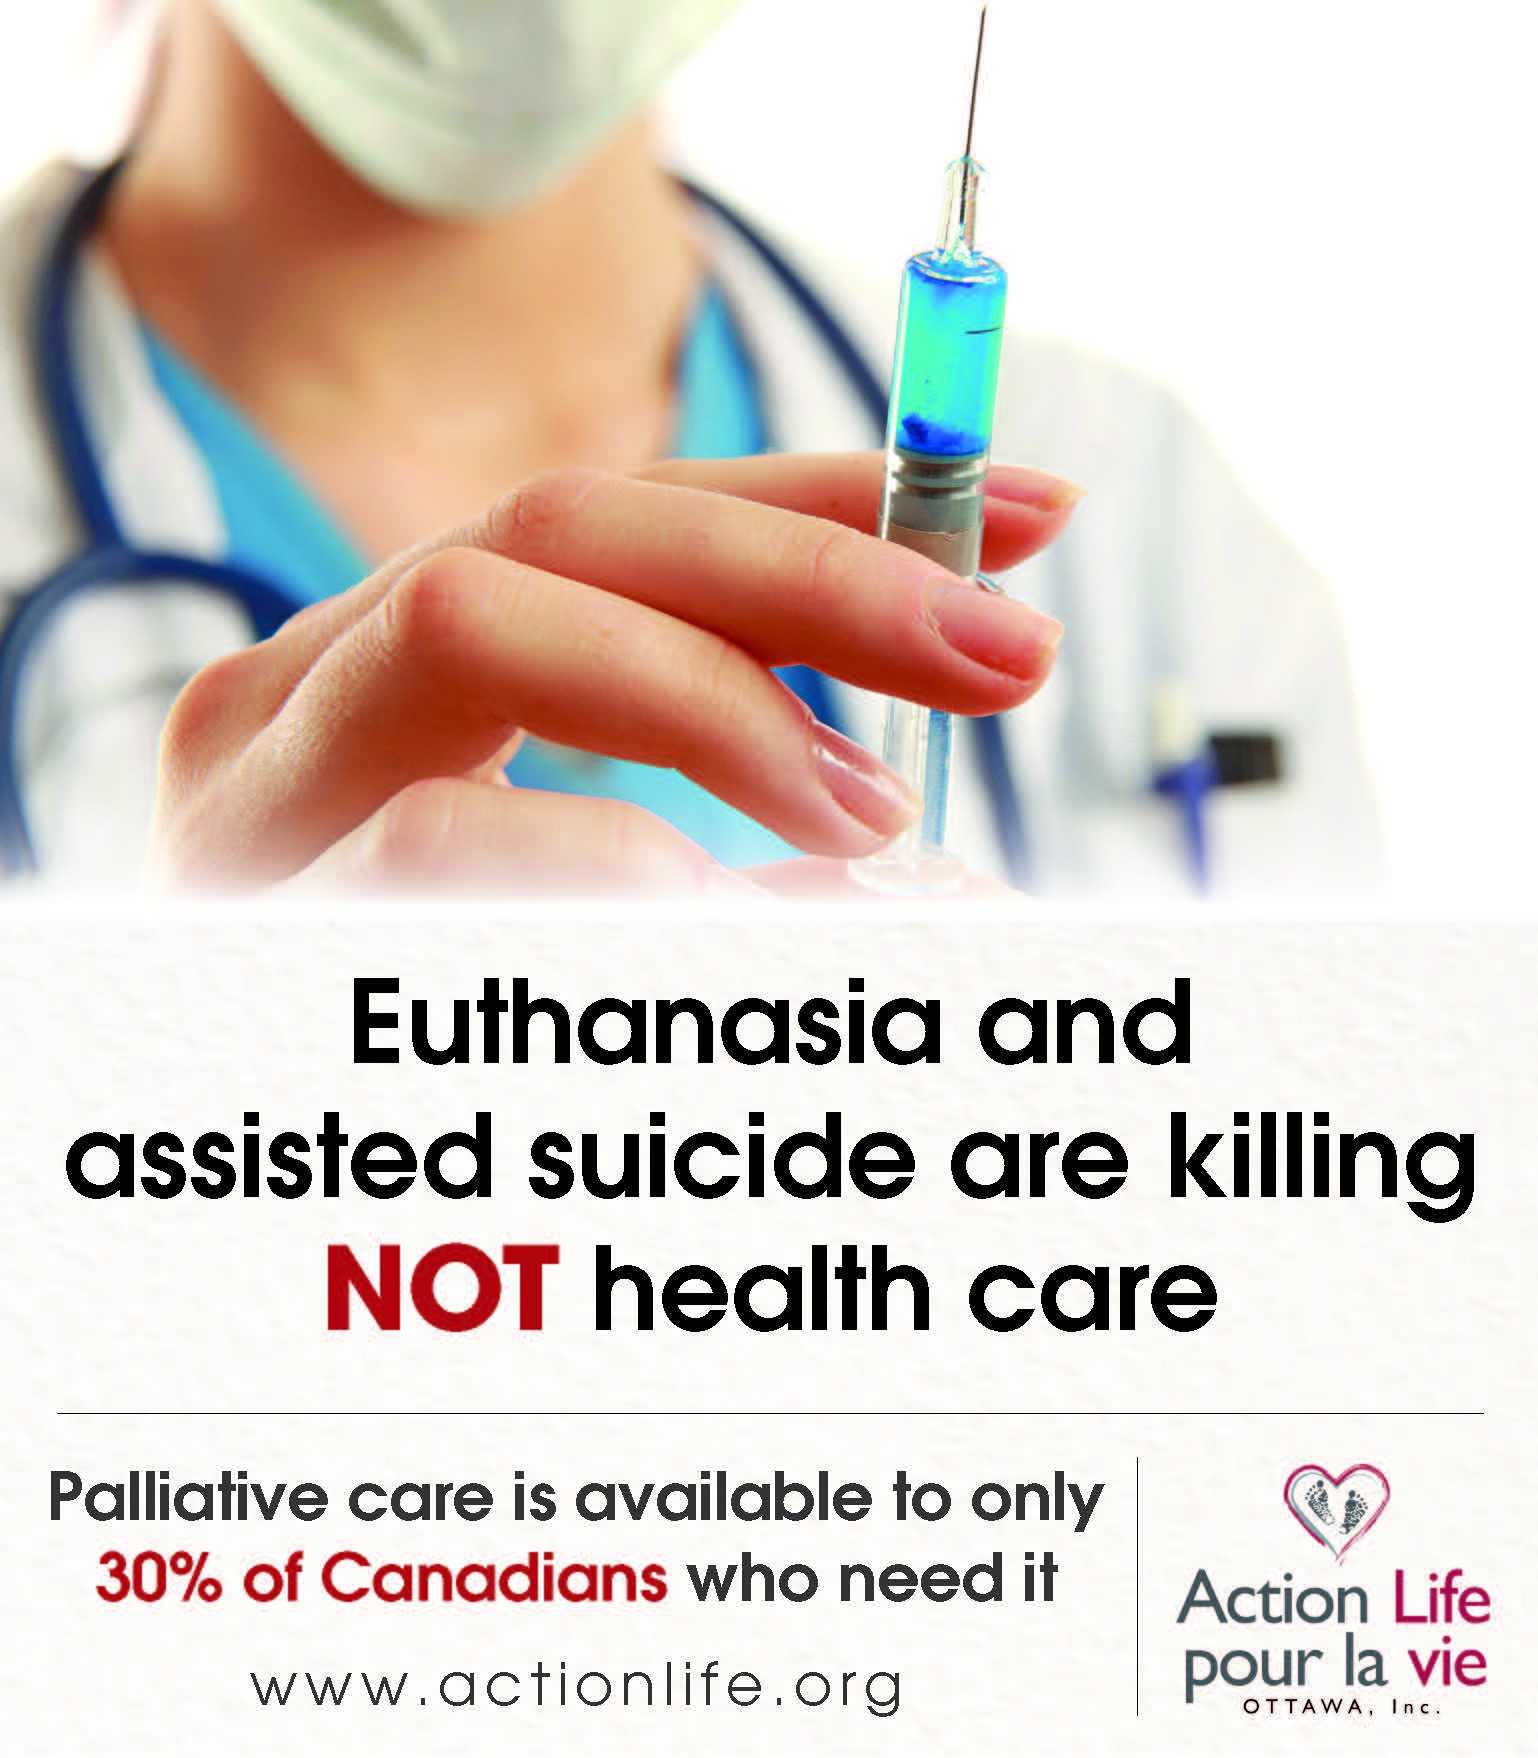 assisted suicide and euthanasia no human life Euthanasia and assisted suicide those whose lives are diminished or weakened deserve special respect sick or handicapped persons should be helped to lead lives as normal as possible.